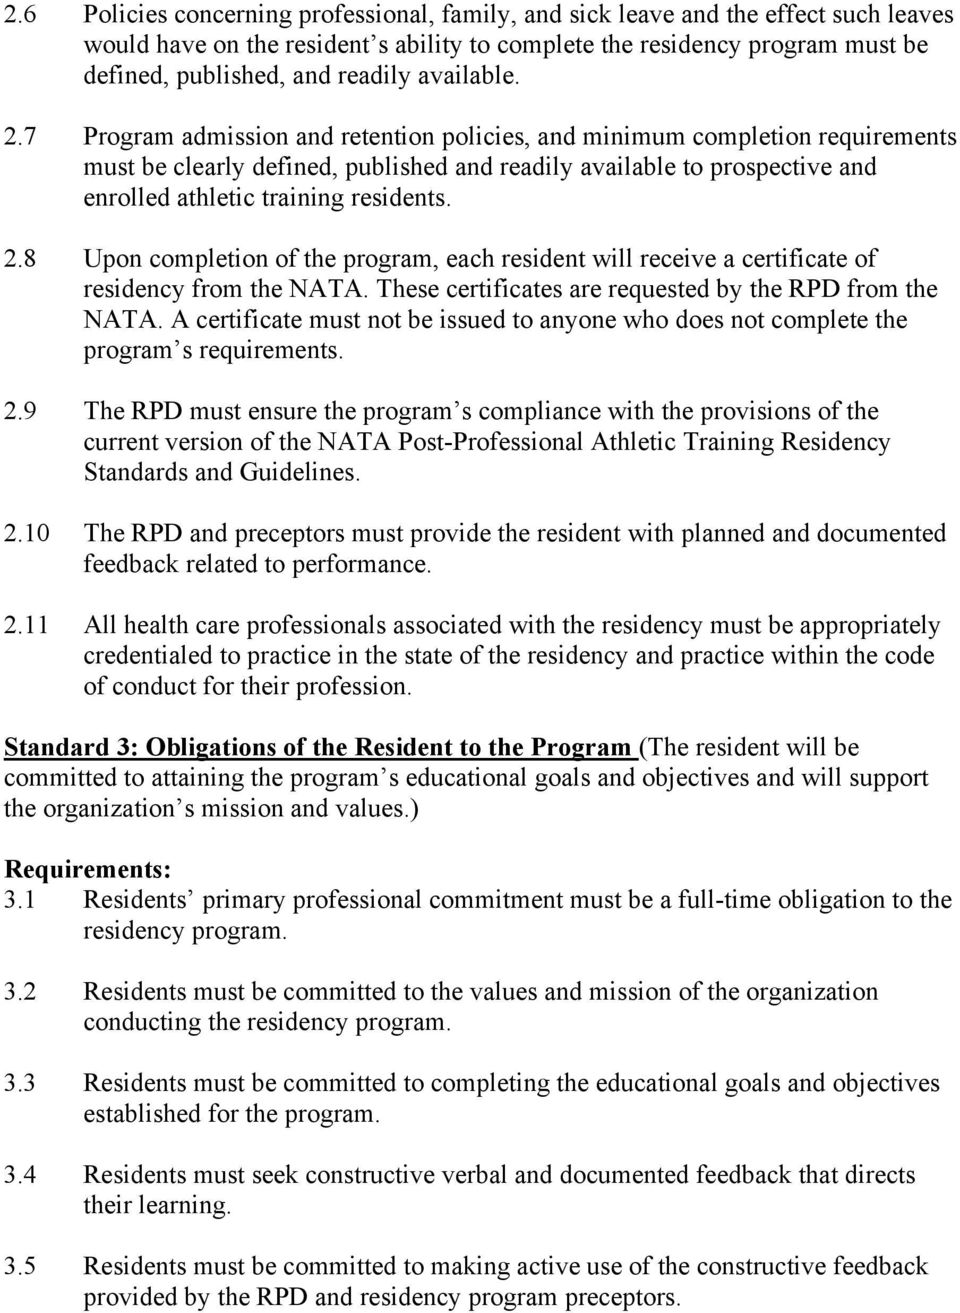 7 Program admission and retention policies, and minimum completion requirements must be clearly defined, published and readily available to prospective and enrolled athletic training residents. 2.